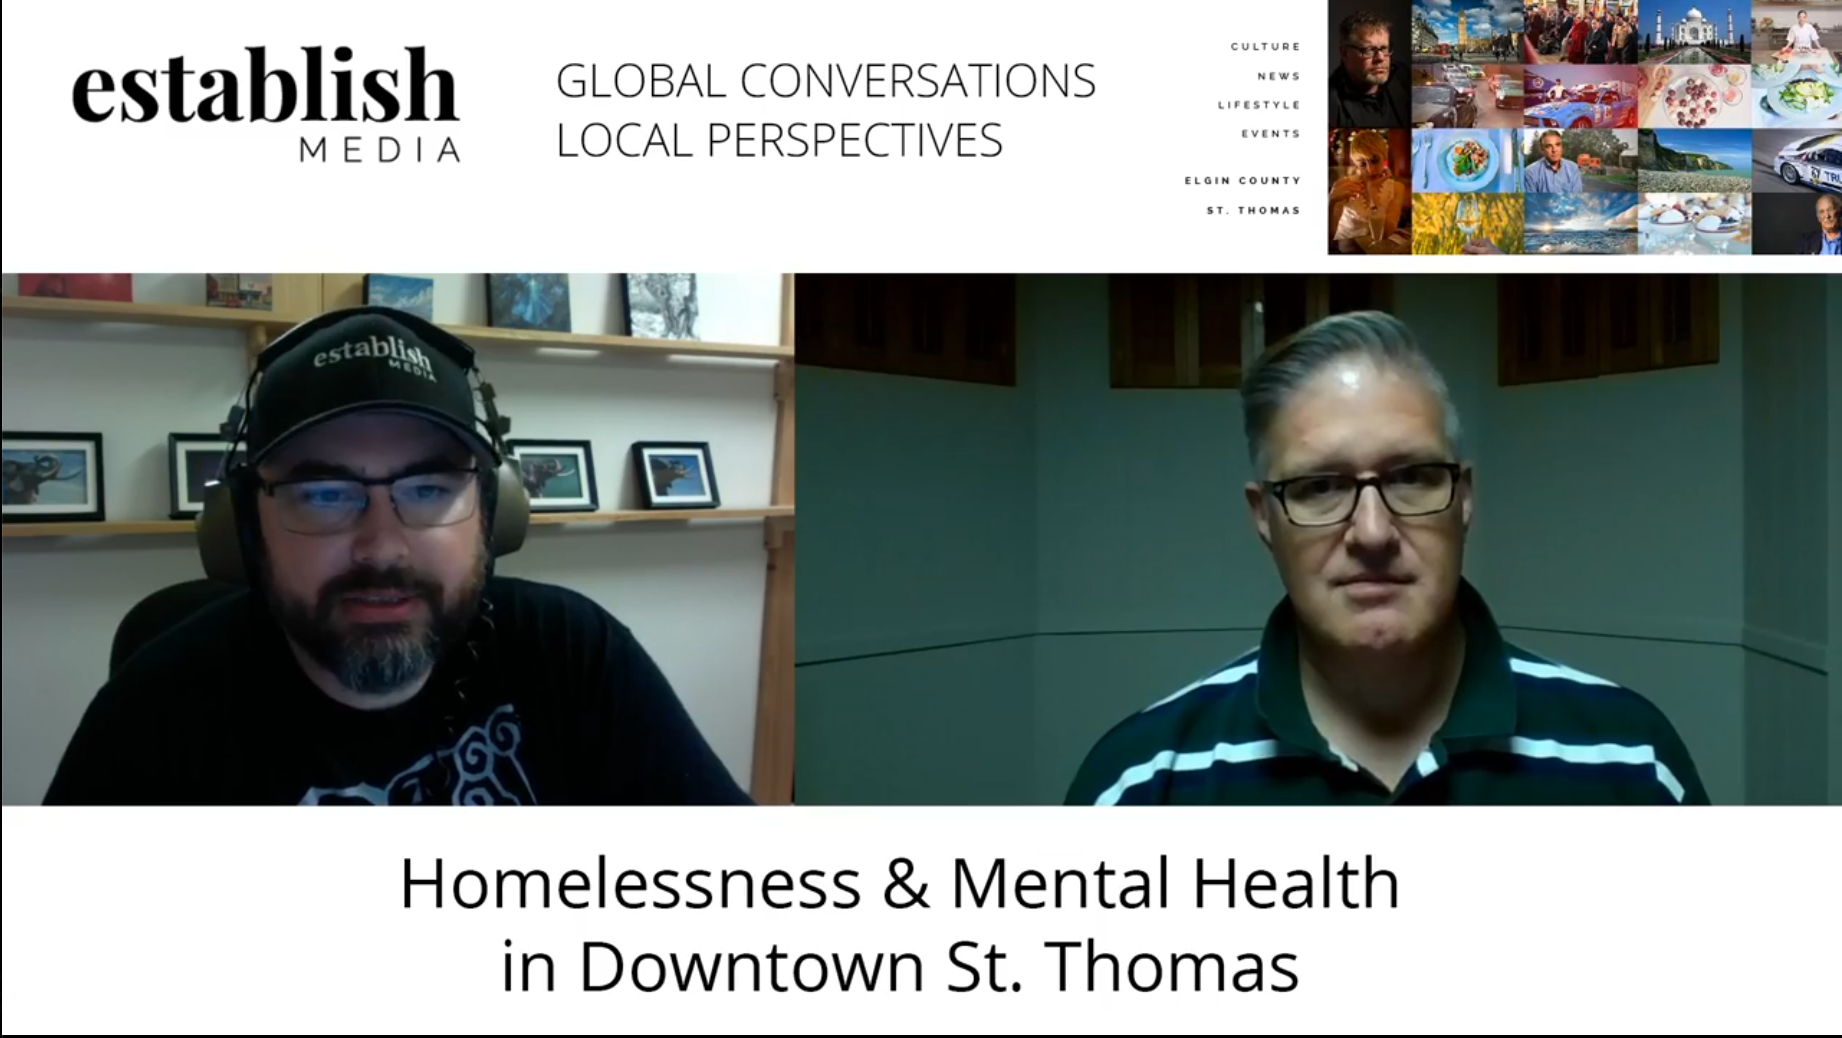 Homelessness & Mental Health in Downtown St. Thomas